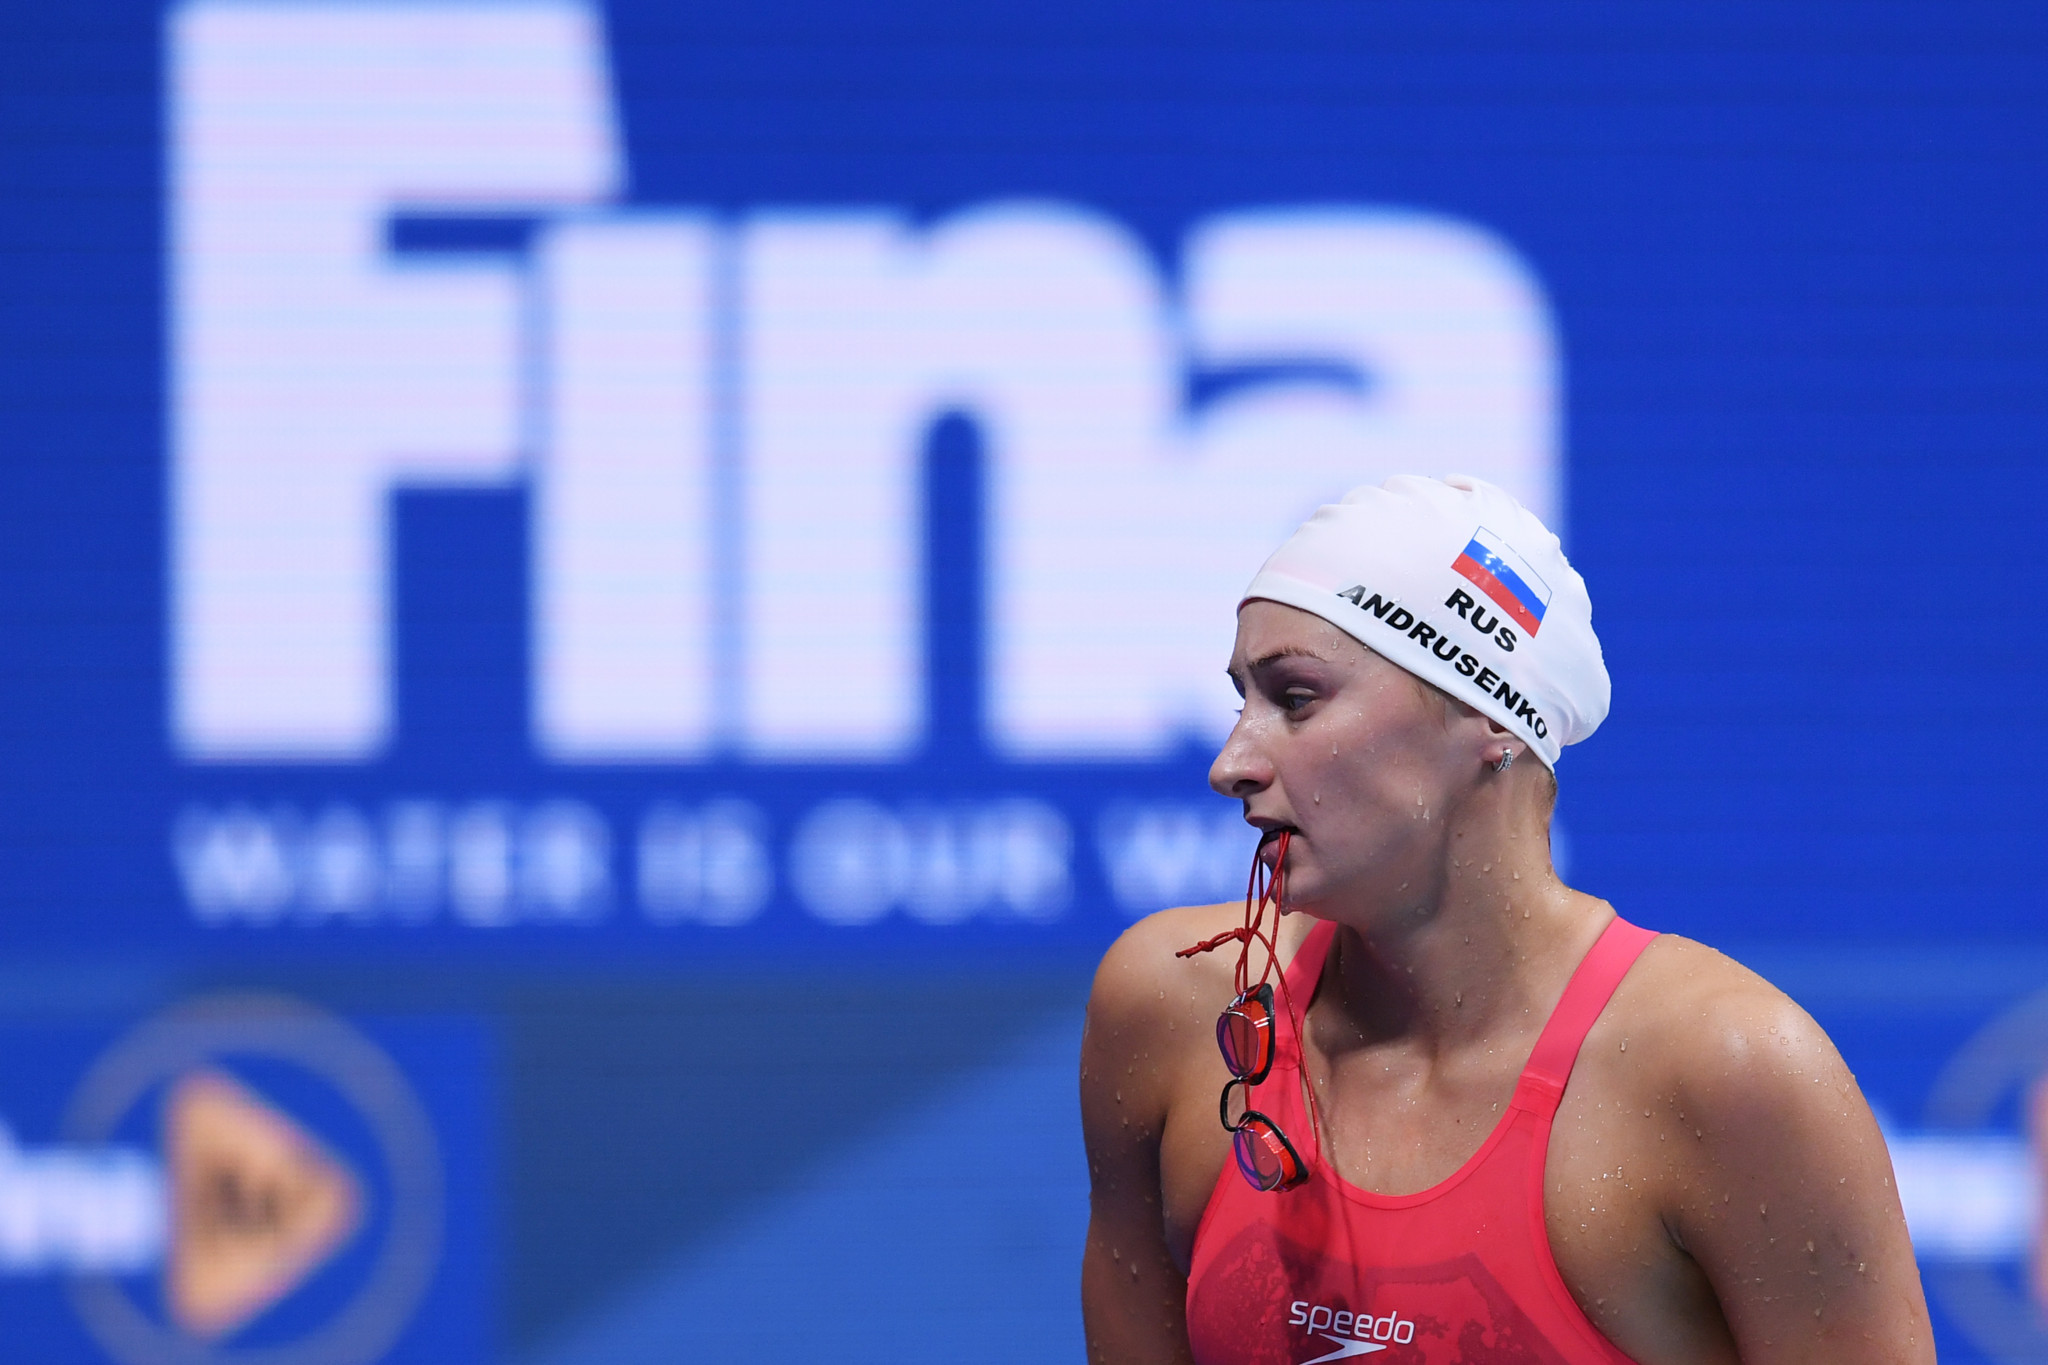 Two Tokyo 2020-qualified ROC swimmers charged with doping violations and provisionally suspended